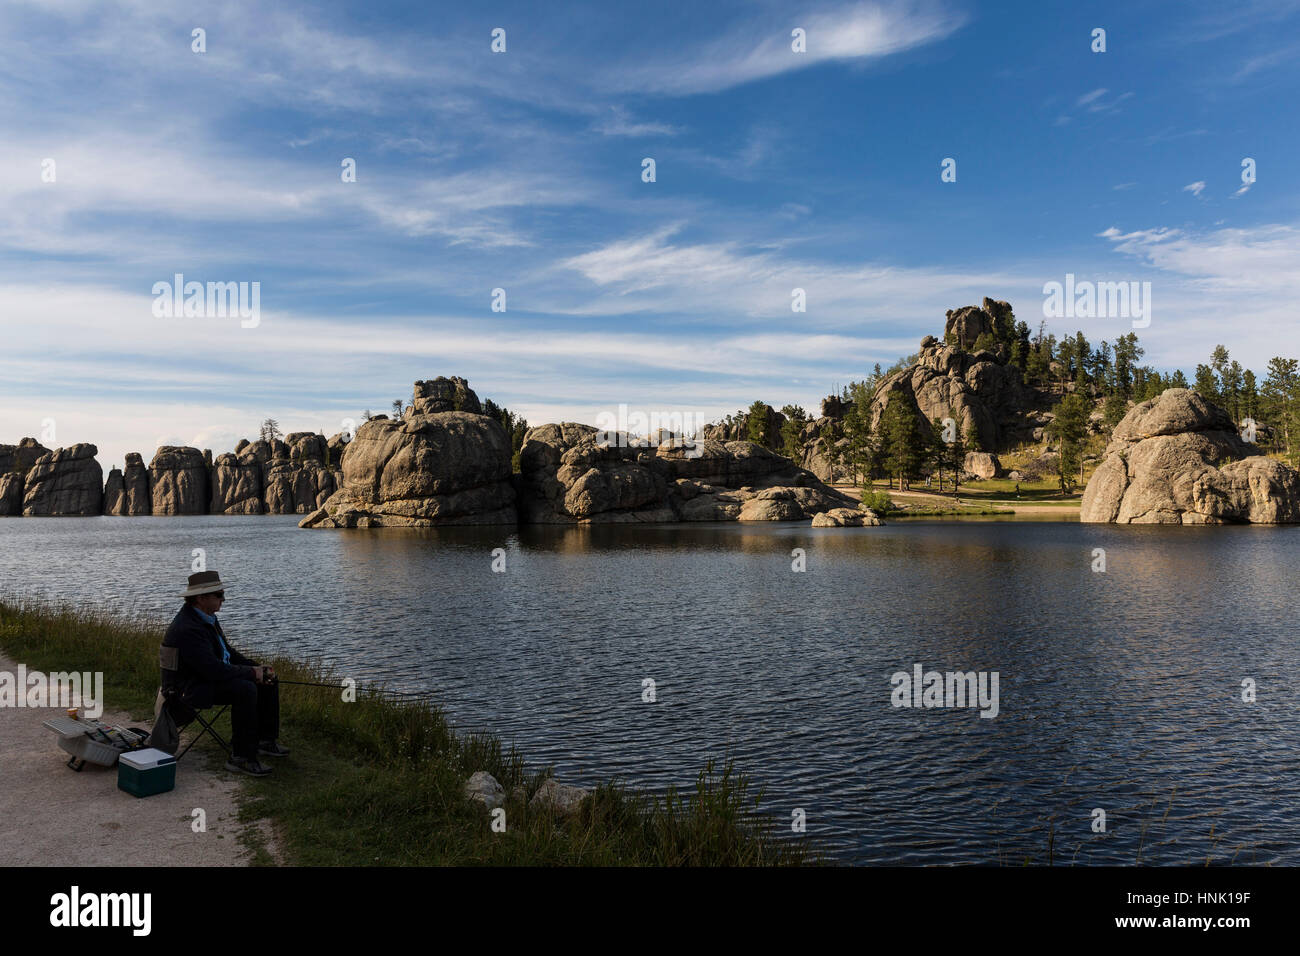 Man fishing at Sylvan Lake. Sept, 2016. Custer State Park, South Dakota, USA - Stock Image